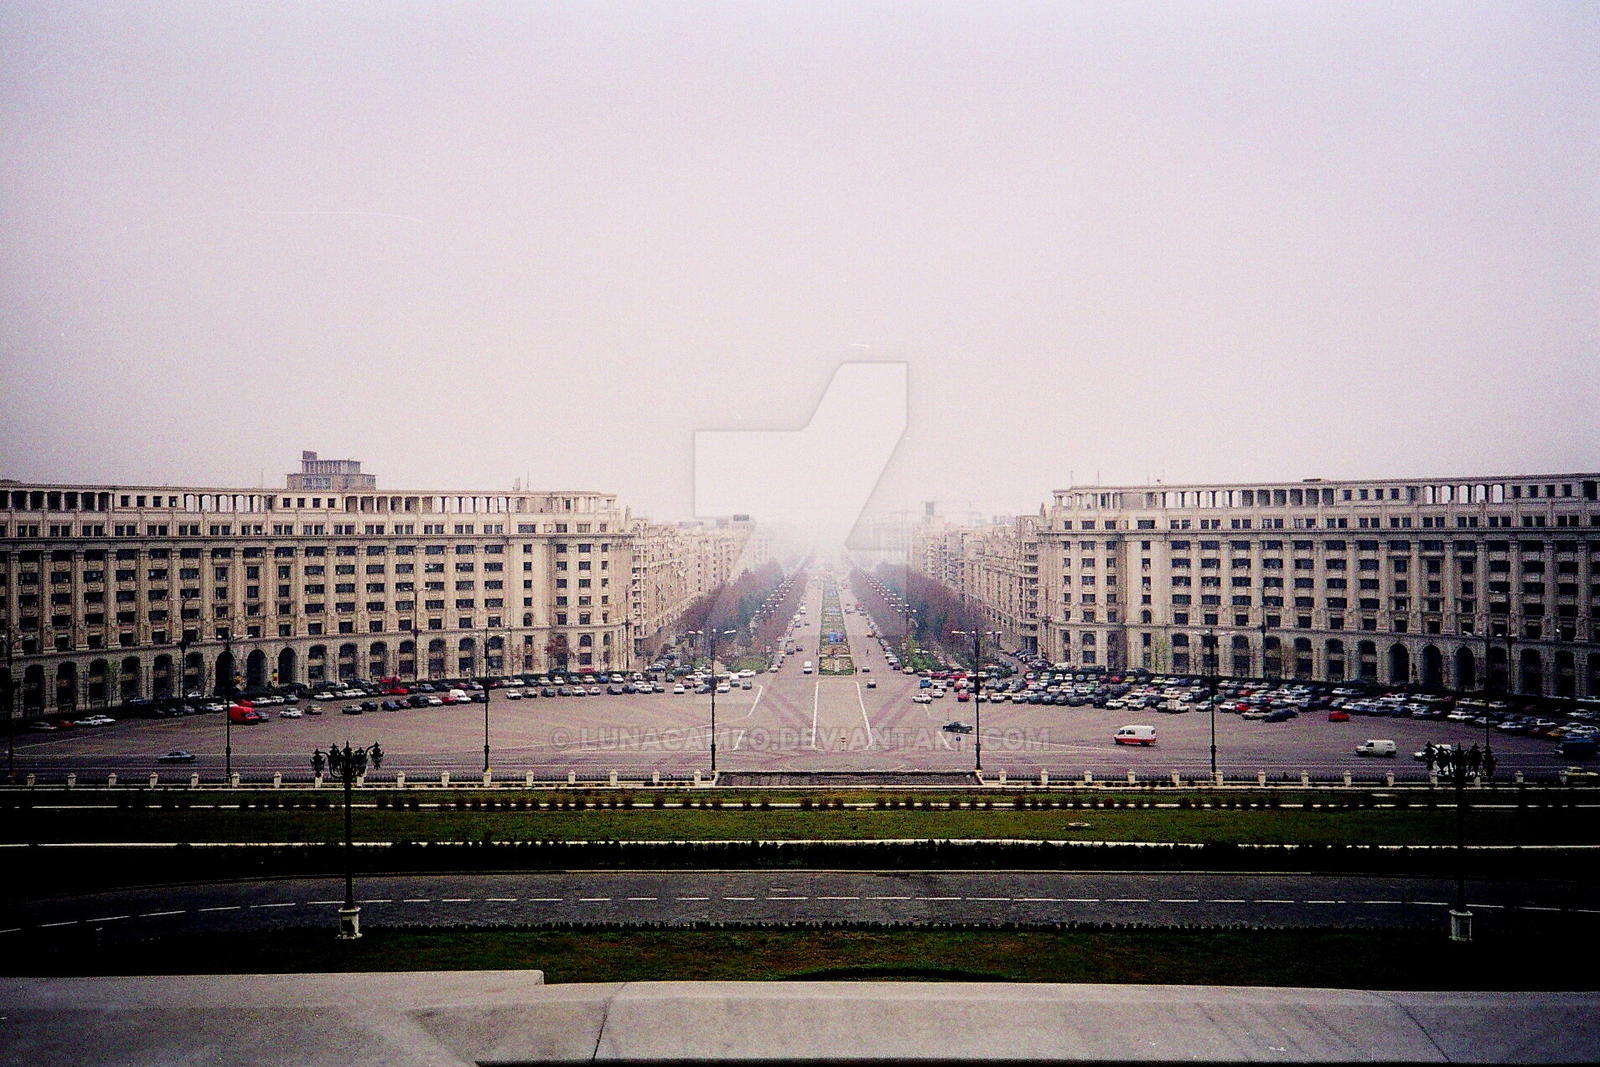 People's Palace View